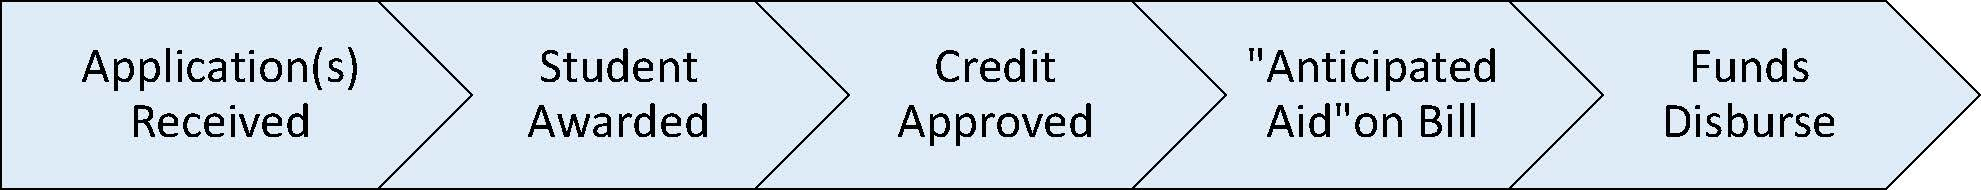 "PLUS Loan Timeline: Application Received, Student Awarded, Credit Approved, ""Anticipated Aid"" on Bill, Funds Disburse"